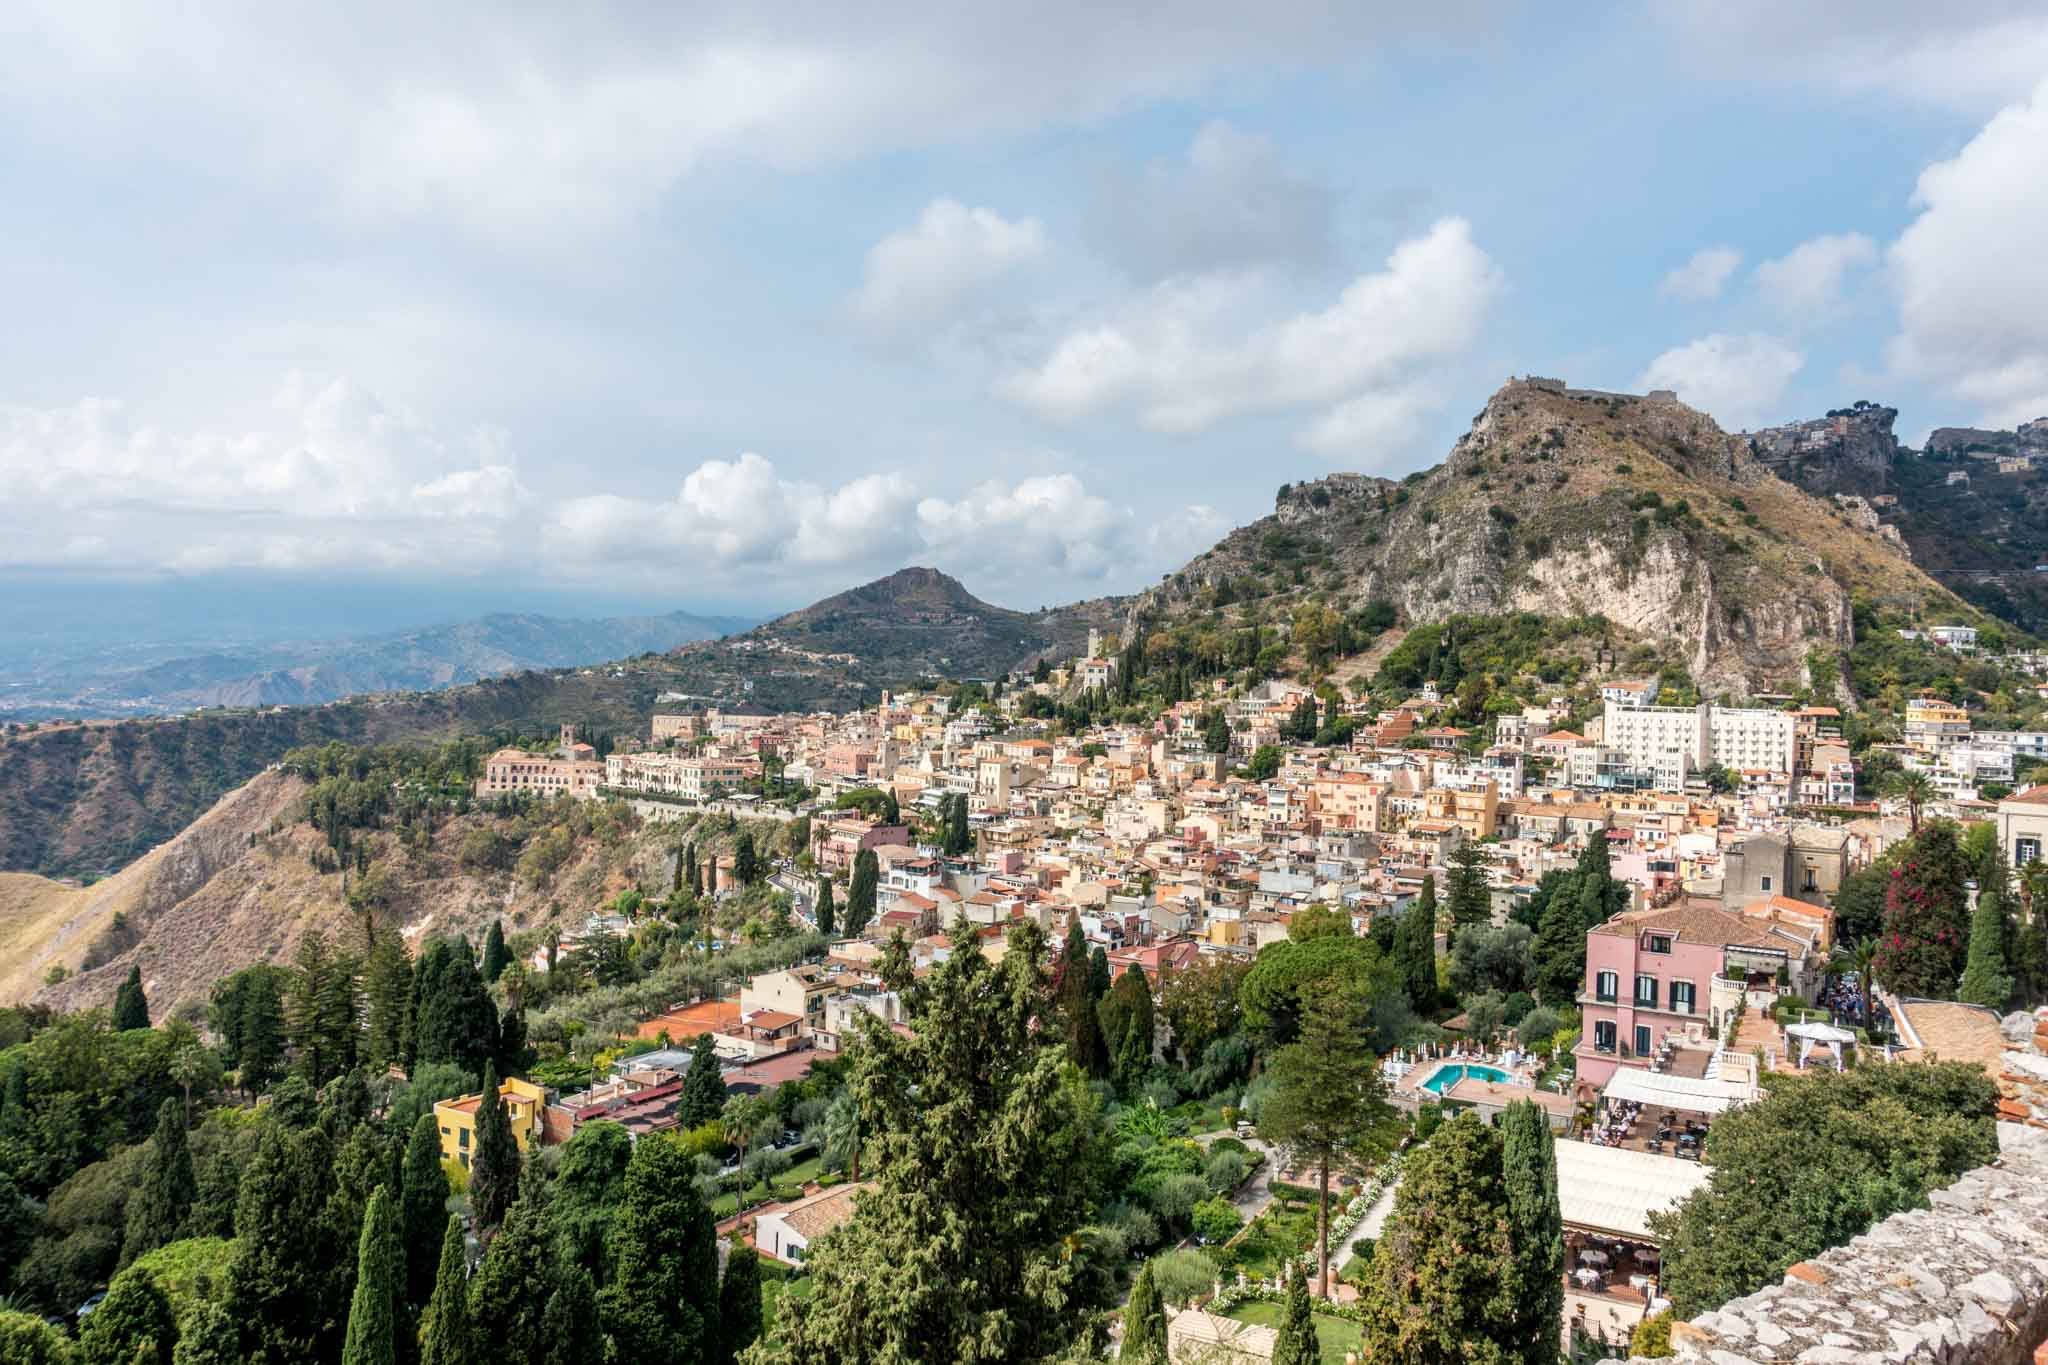 Panoramic view of a town and mountains